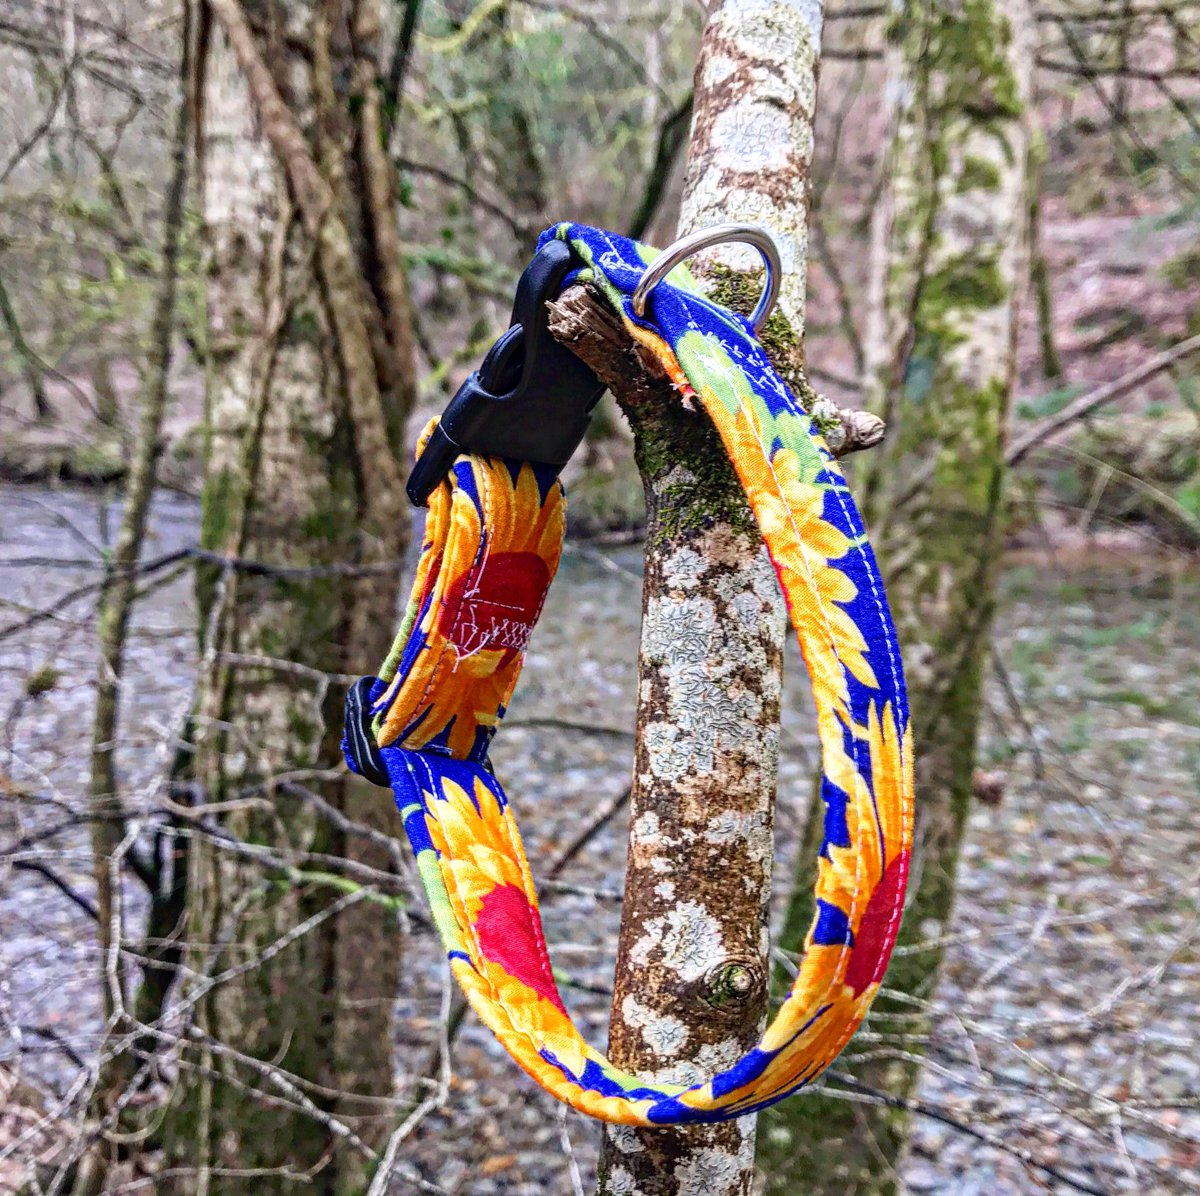 Our sunshine collar is a fantastic part of our Spring collection, with the deep royal blue and colour popping yellow sunflowers, this collar will make your dog stand out in nature. #dogcollars #dog #SmallBusiness